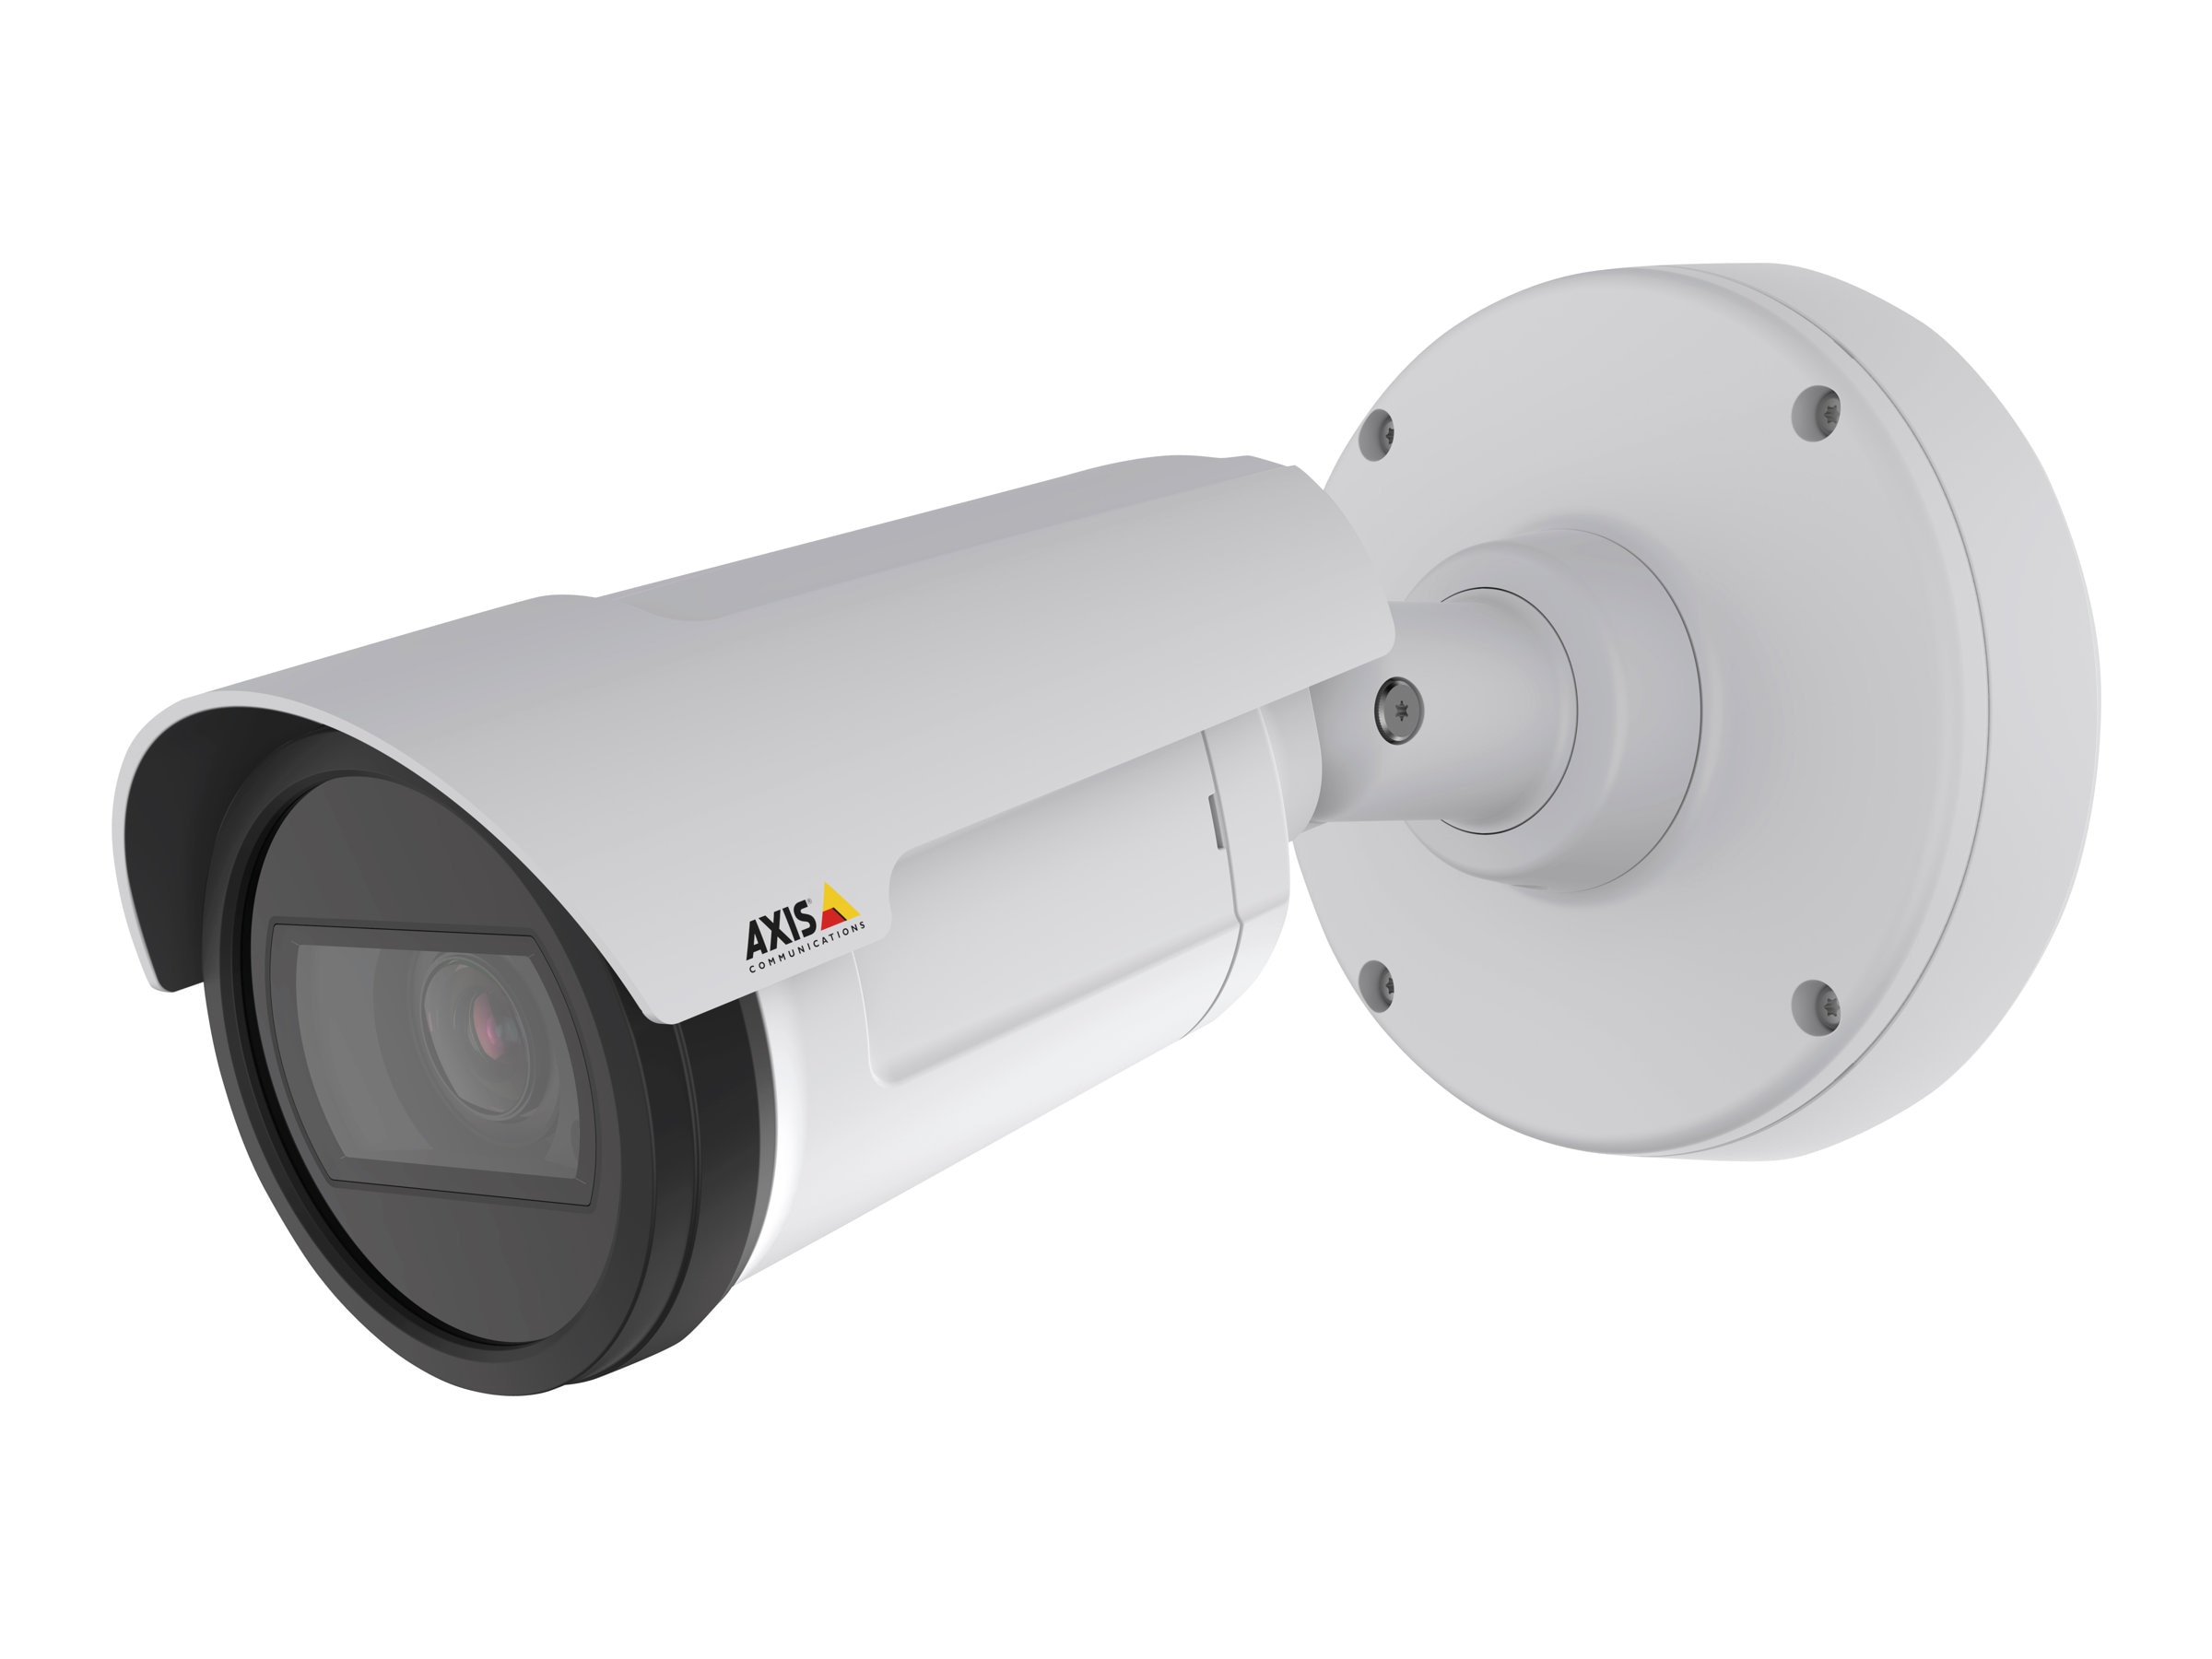 Axis P1427-LE Outdoor Fixed Network IR Camera with 2.8-9.8mm Lens